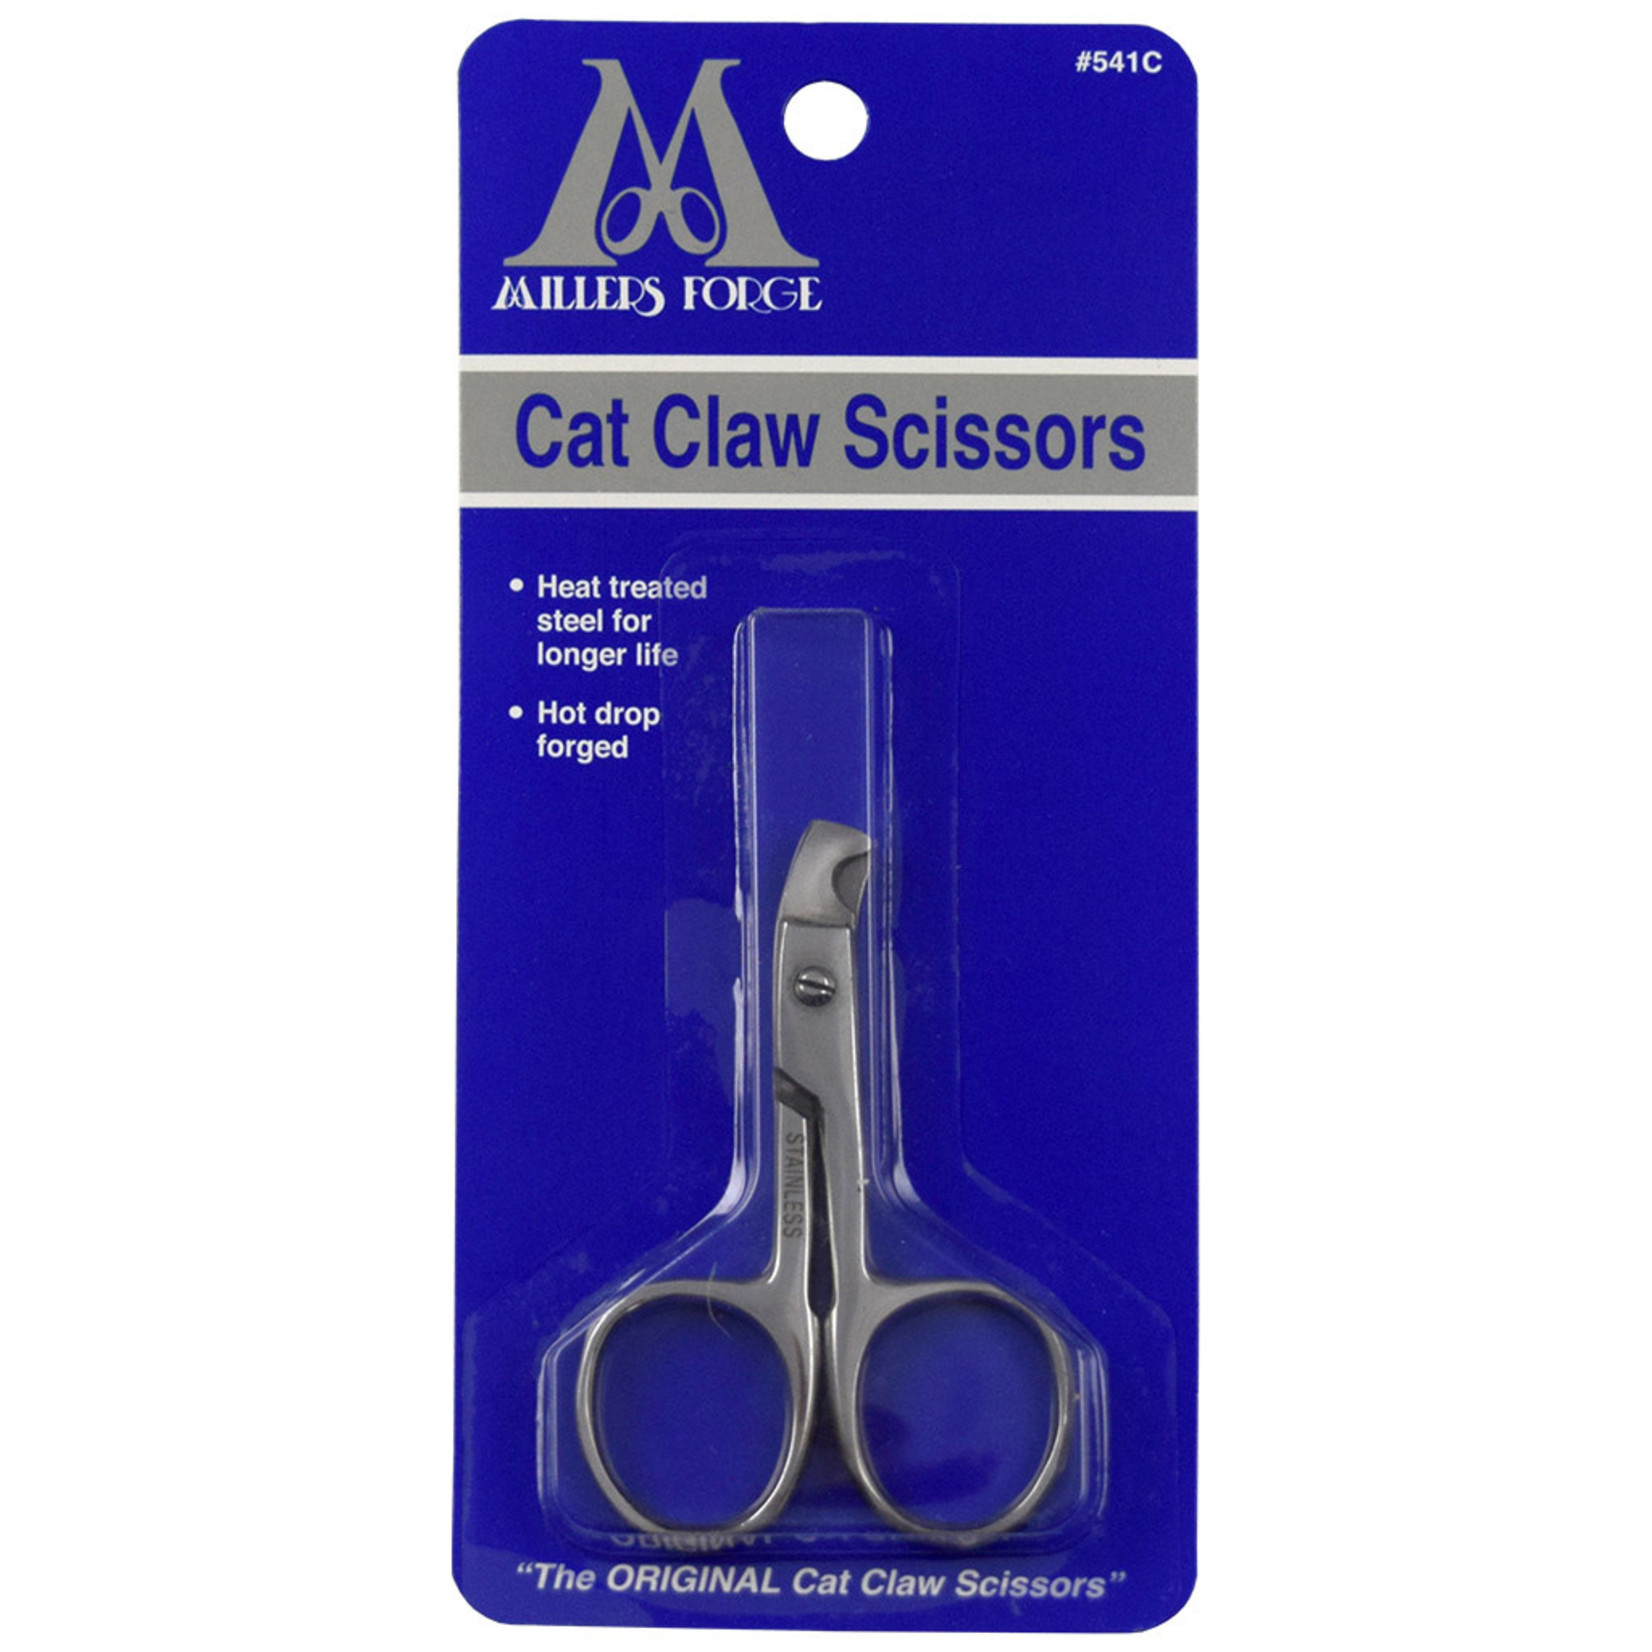 Millers Forge Claw Scissors Cat